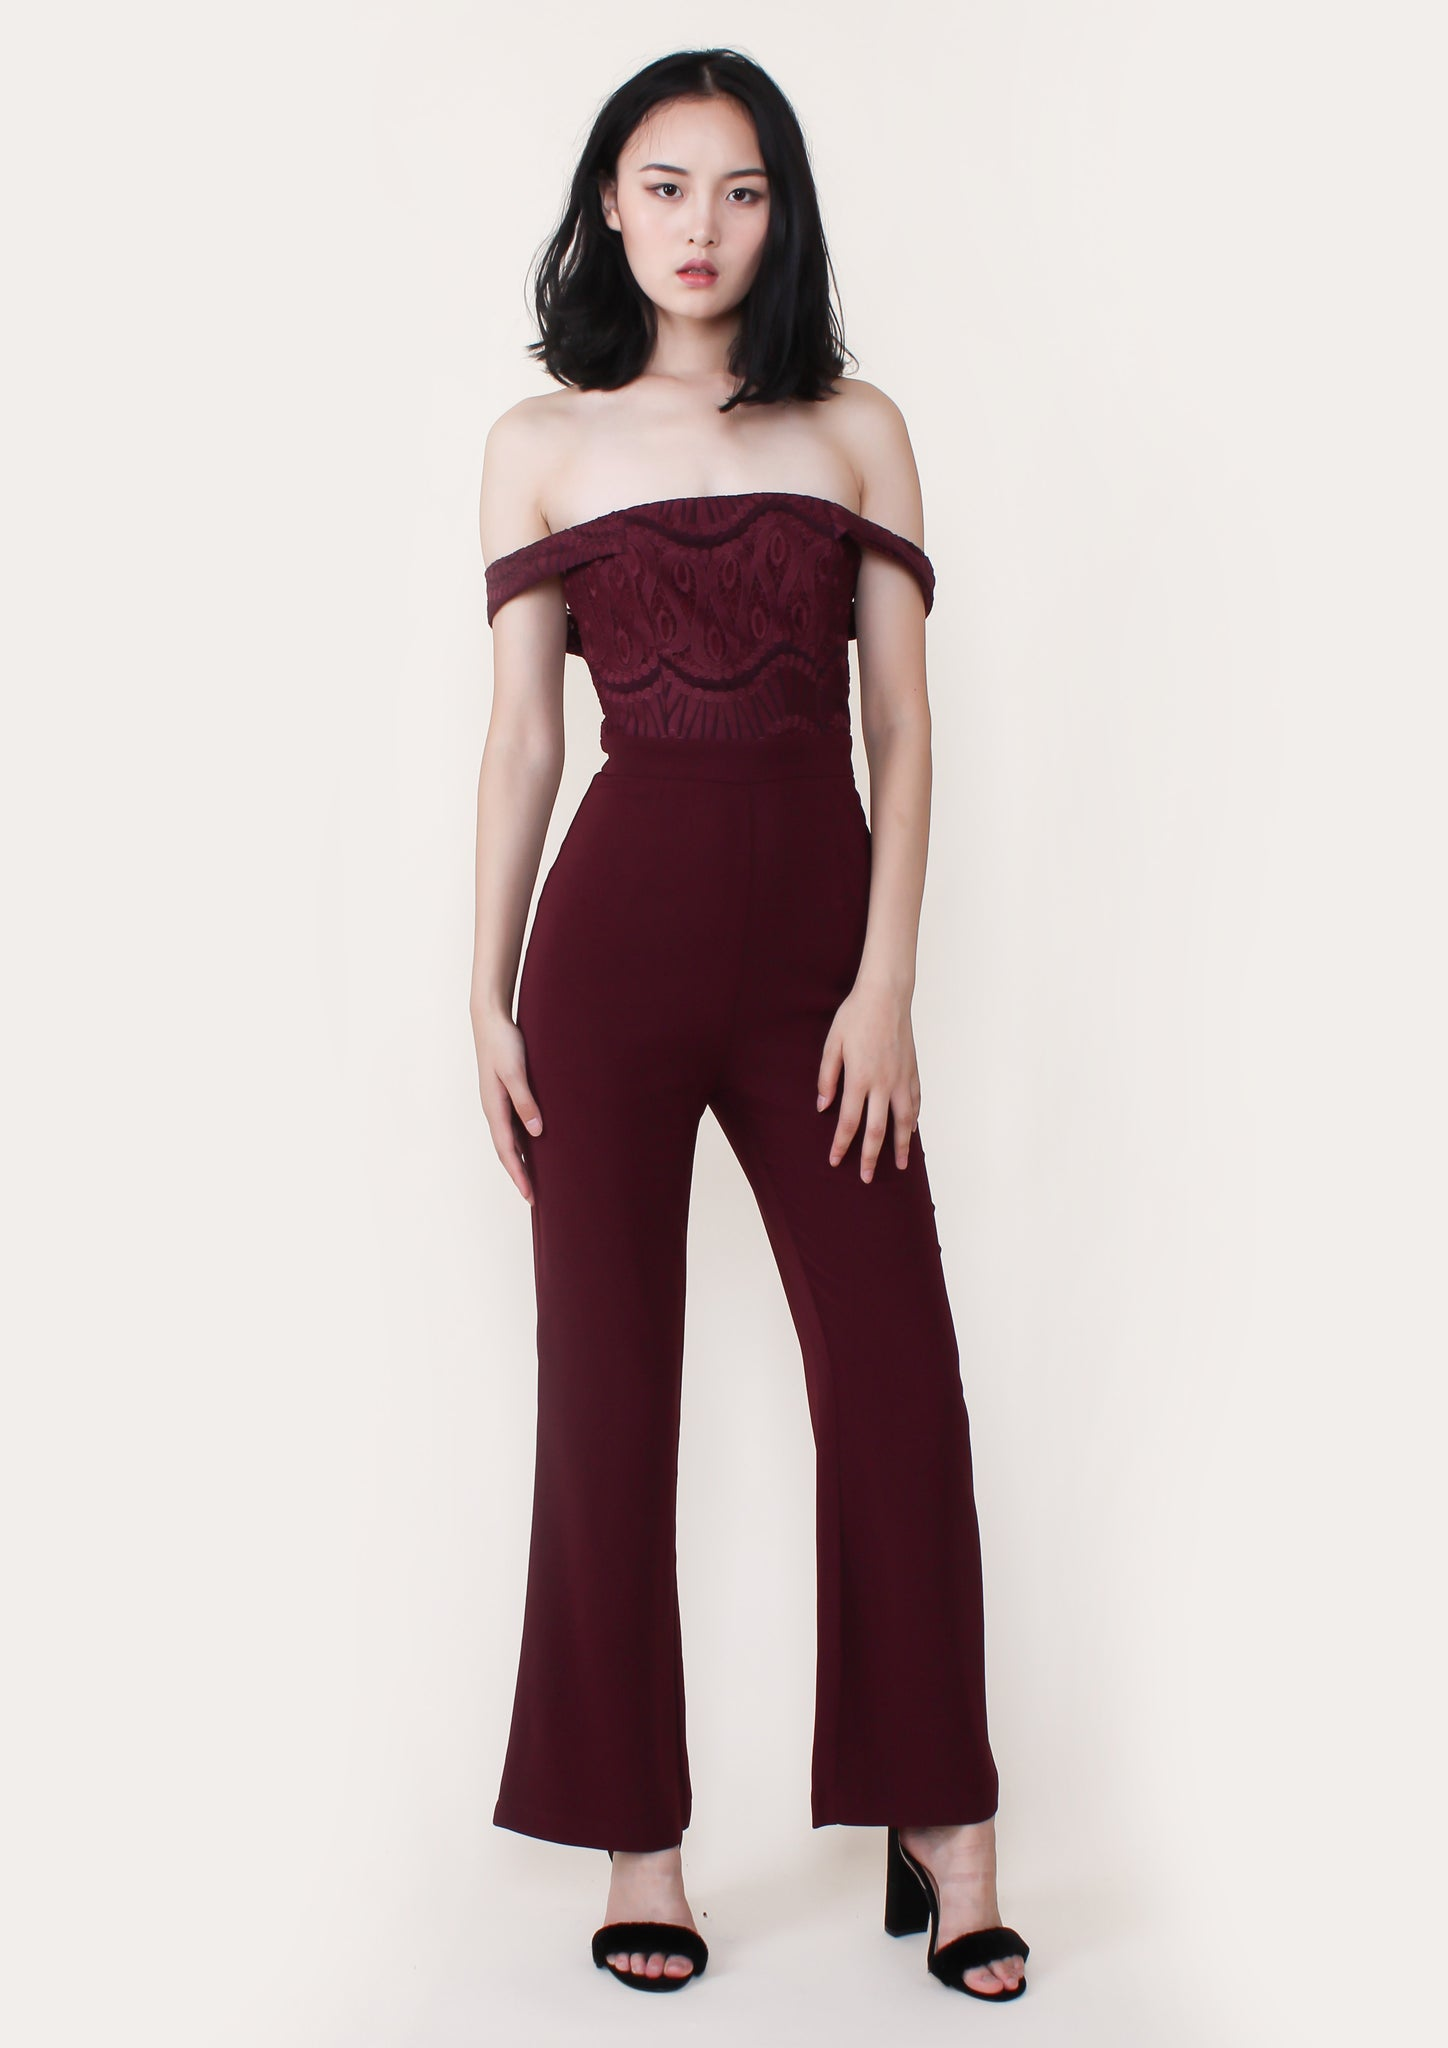 The Lucky Streak Jumpsuit